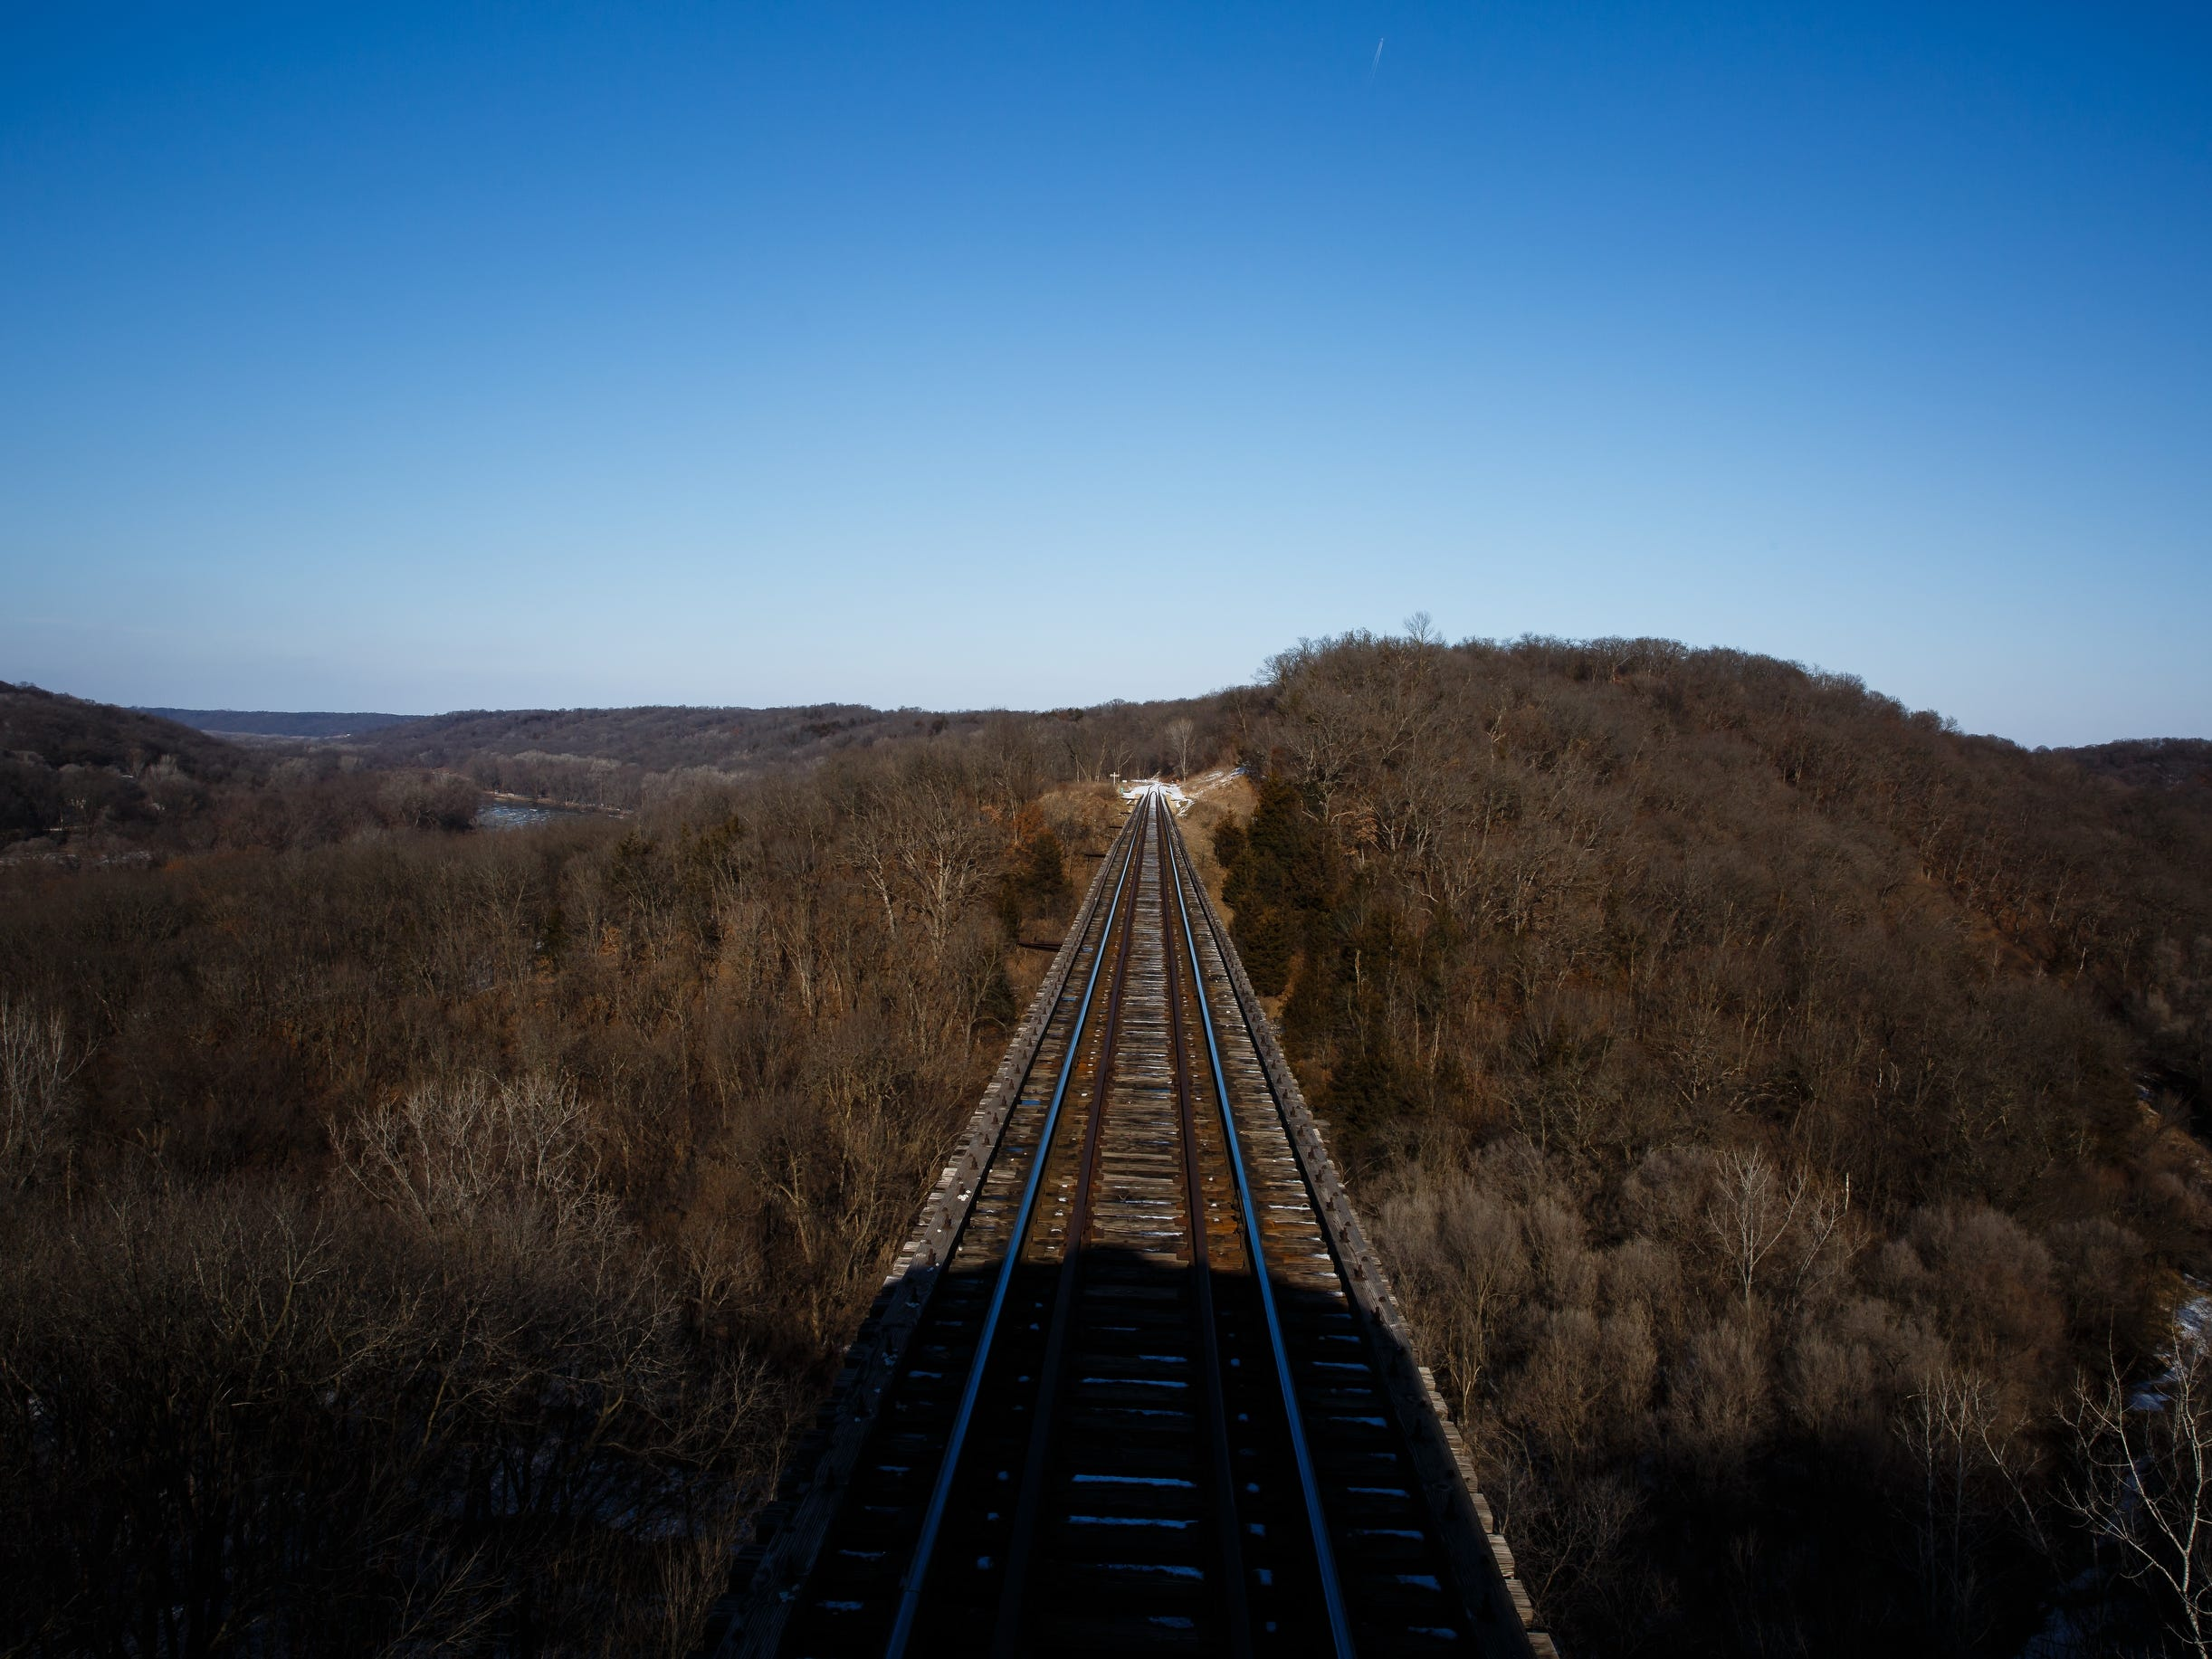 Views of Boone Valley are seen during the Santa Express train at the Boone and Scenic Valley Railroads on Saturday, Dec. 8, 2018, in Boone.